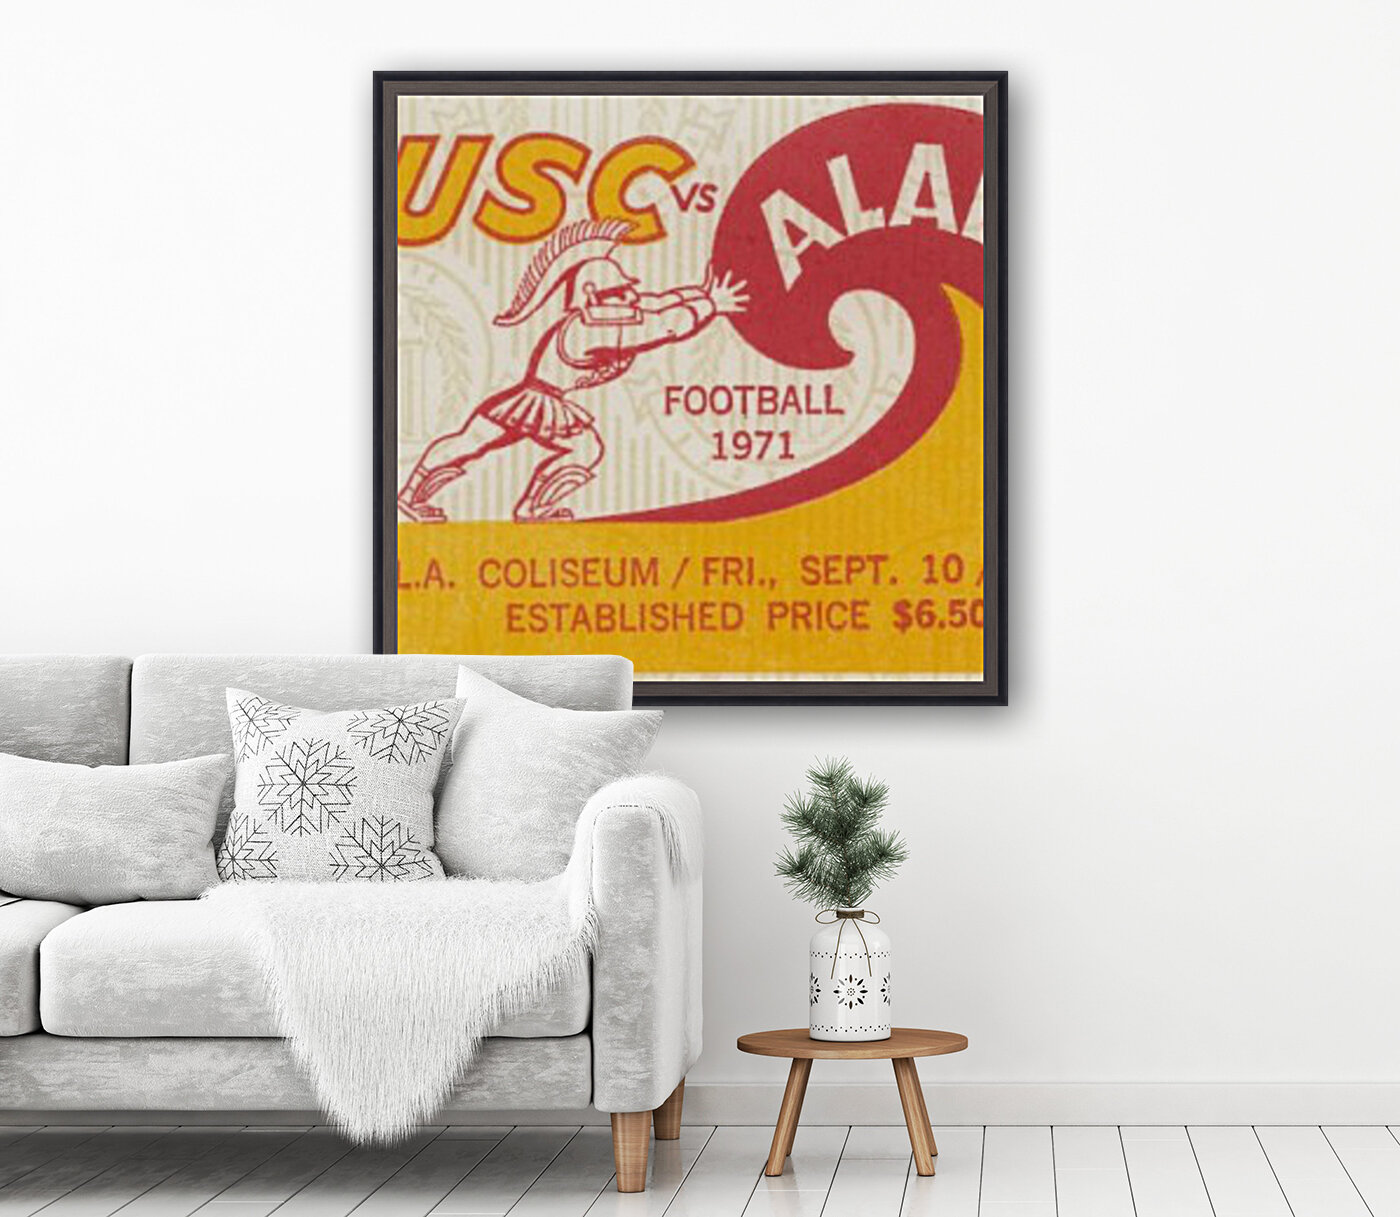 1971 alabama usc trojans football ticket stub prints on wood  Art